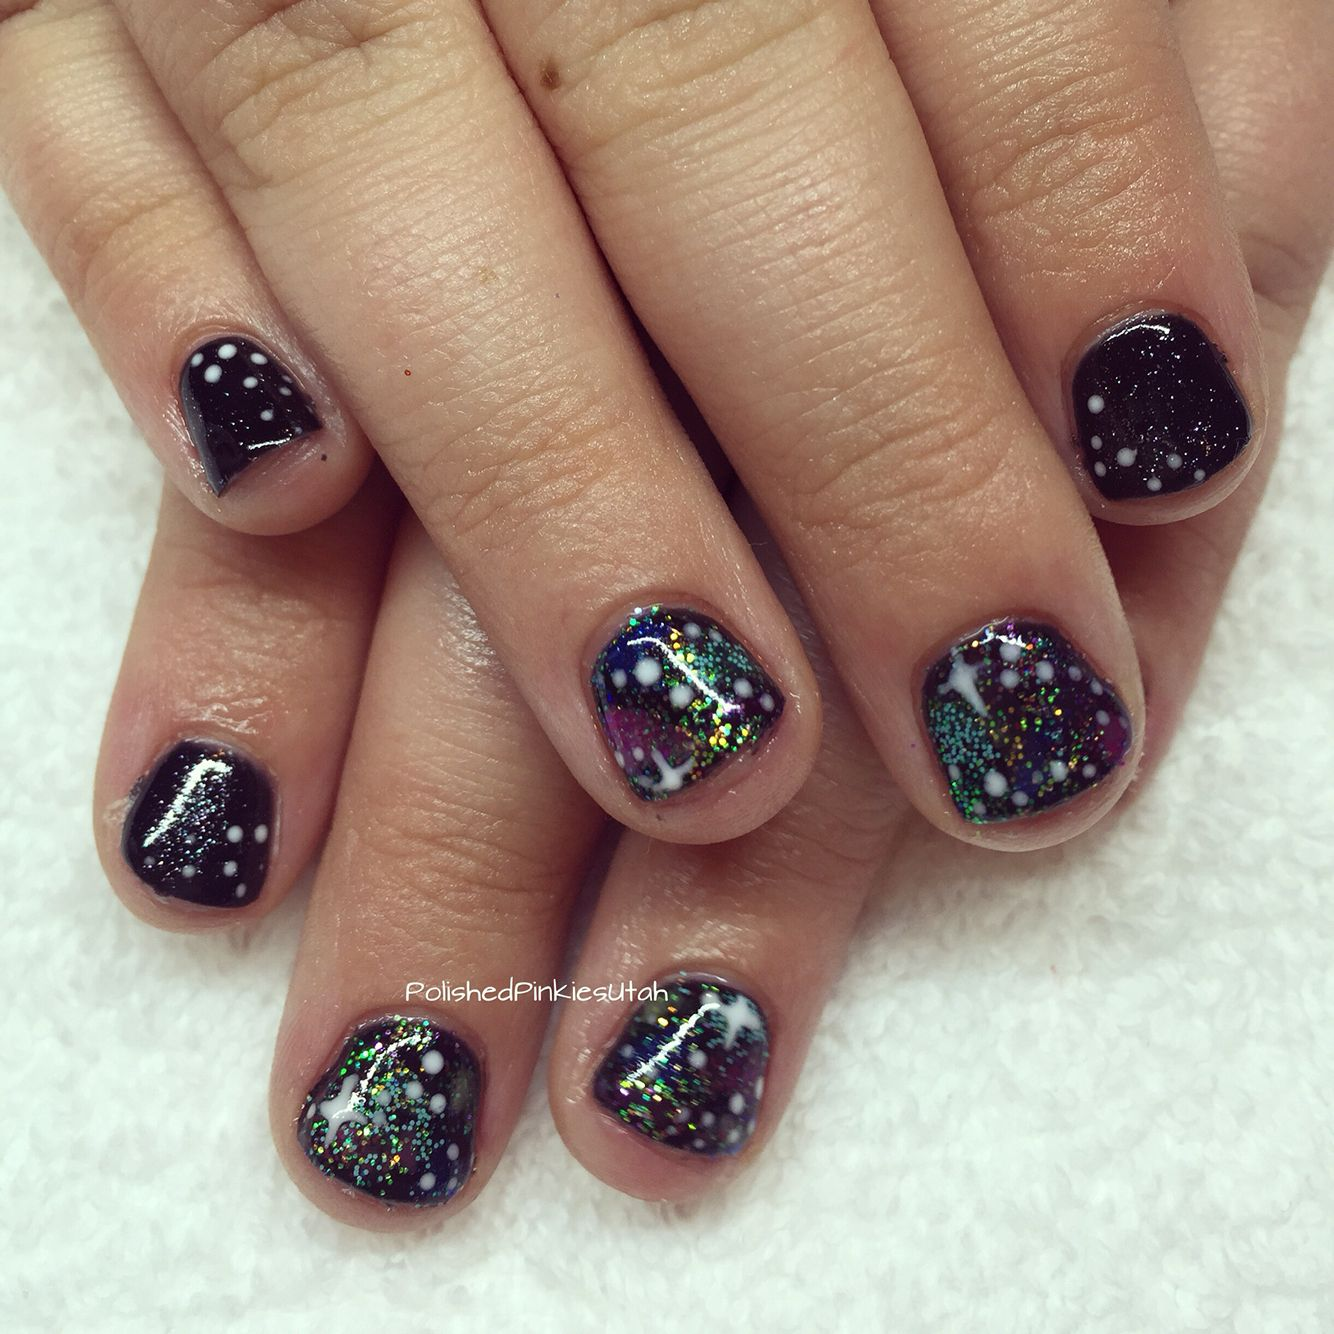 Polished Pinkies Utah: Galaxy nails for this little \'what\'s in the ...